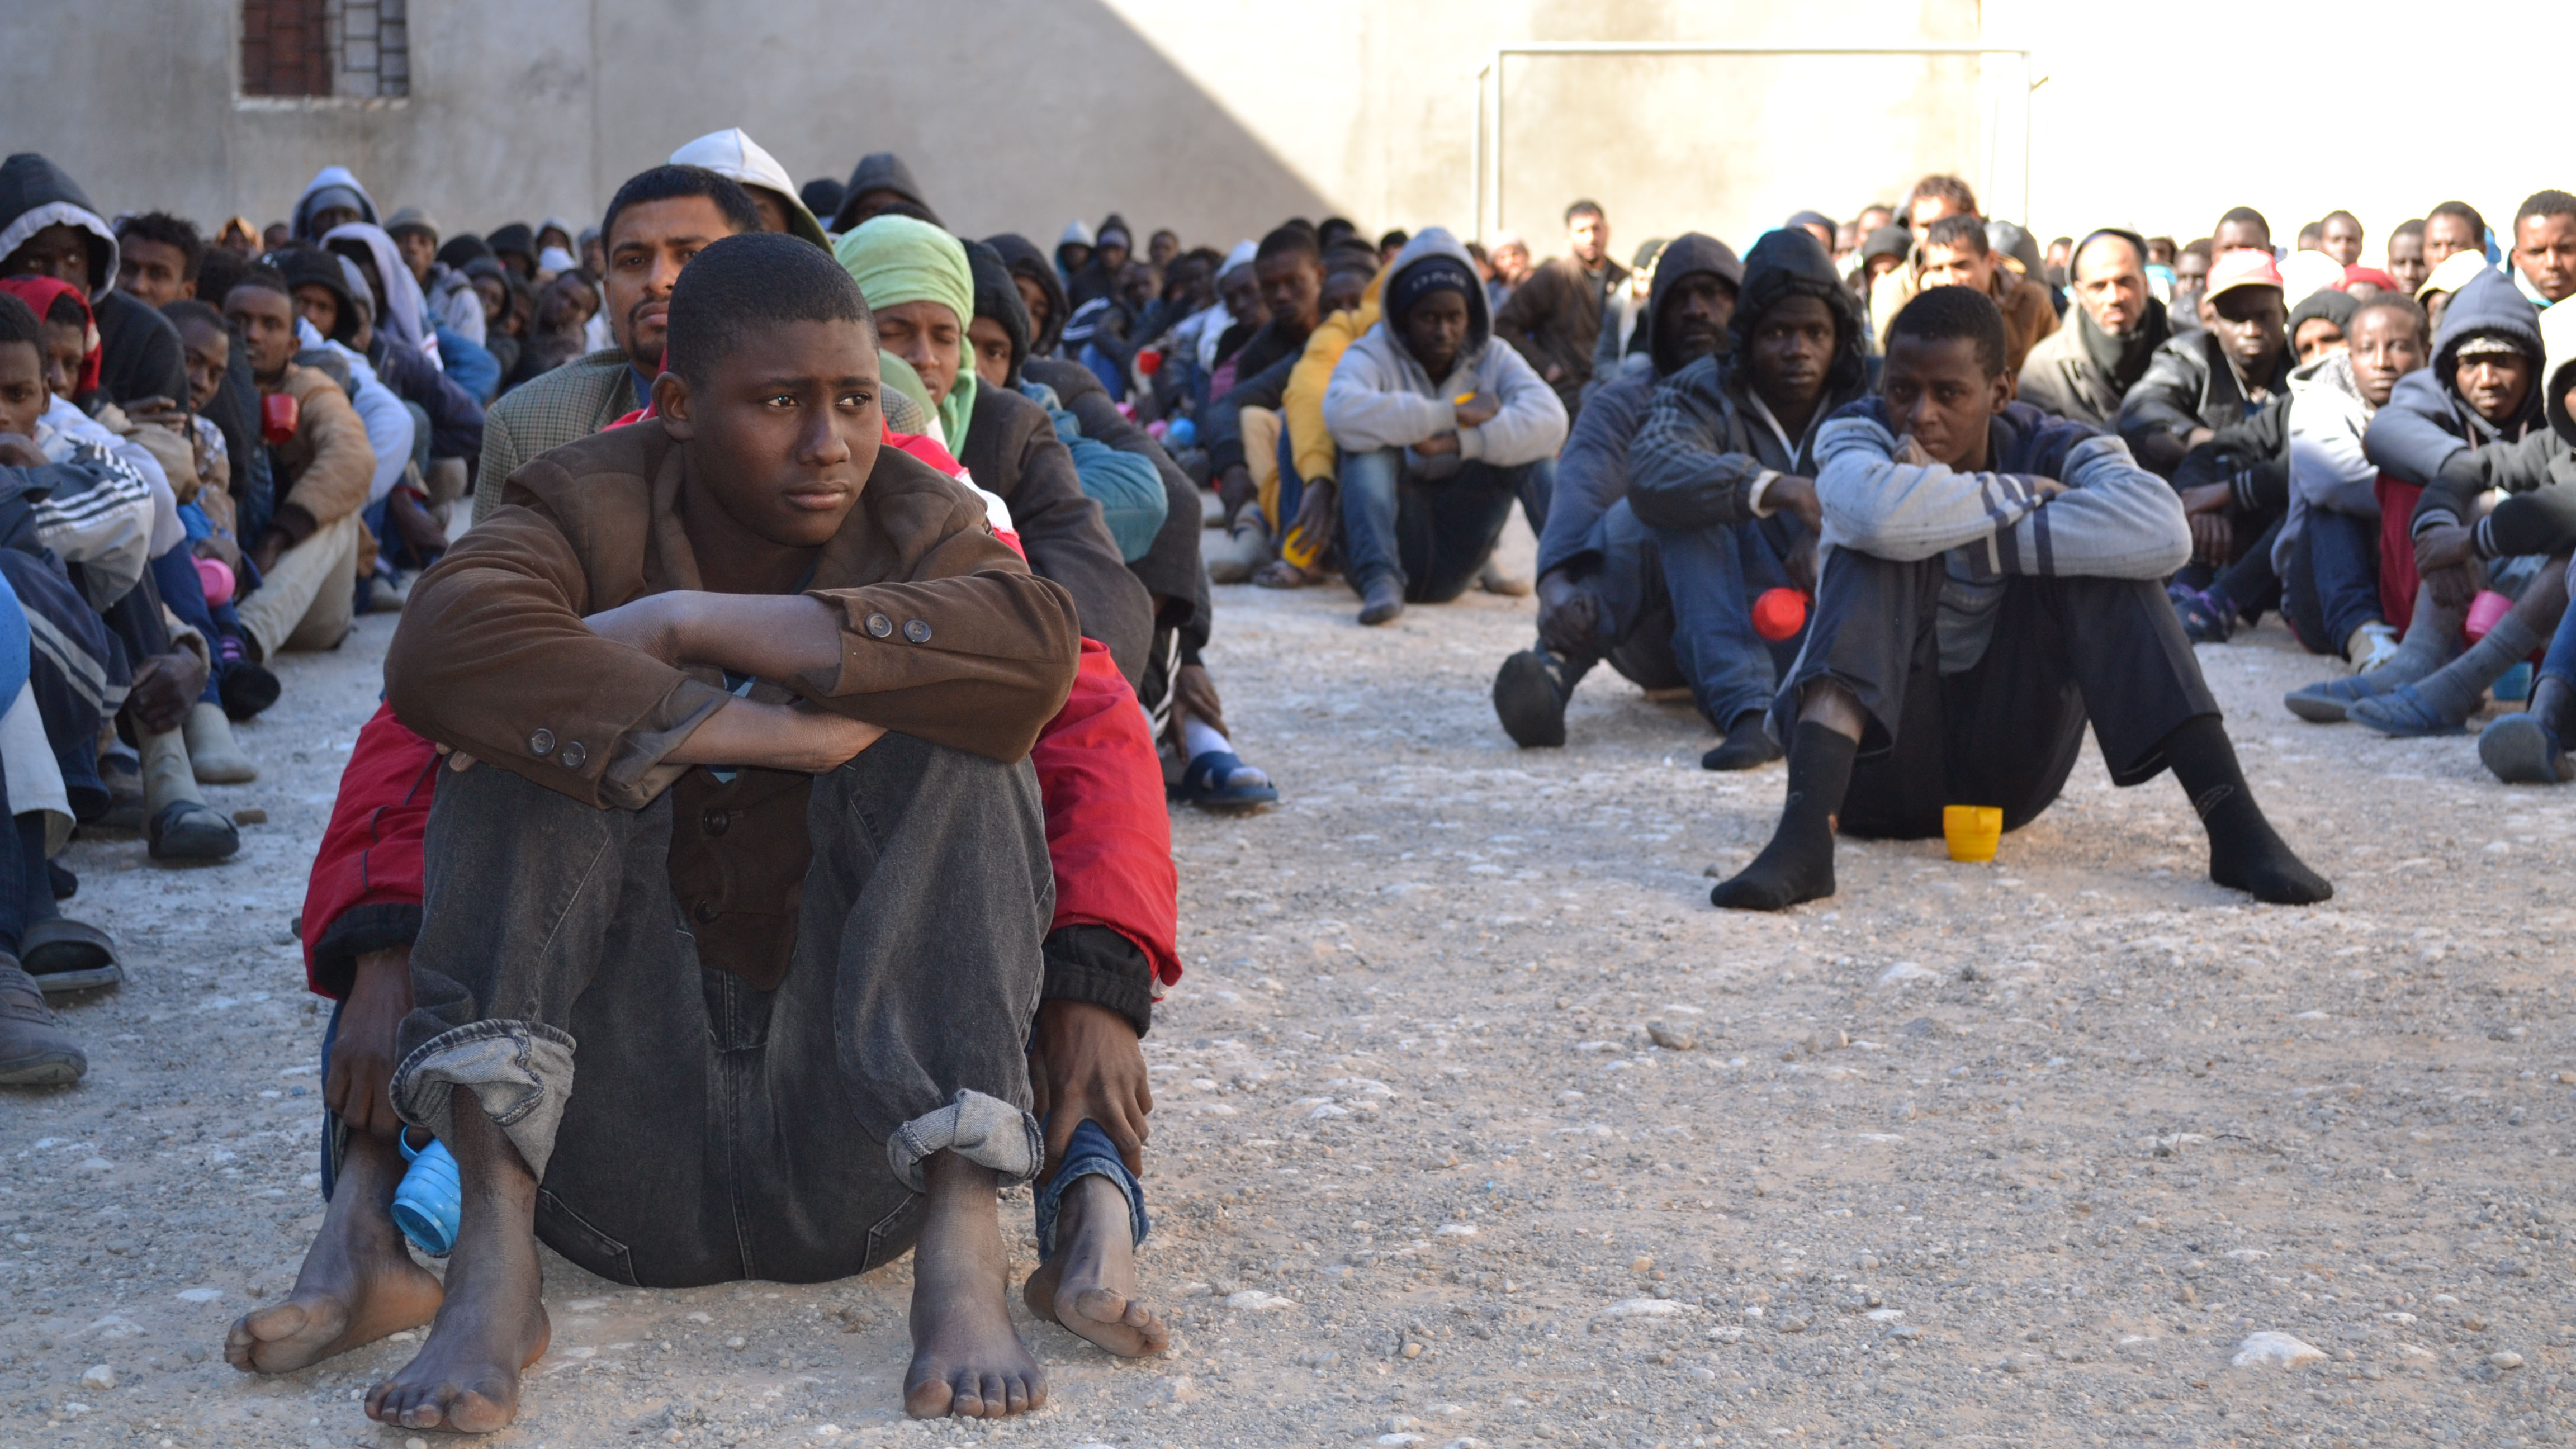 Detainees at a migrant jail in Zawiya, Libya